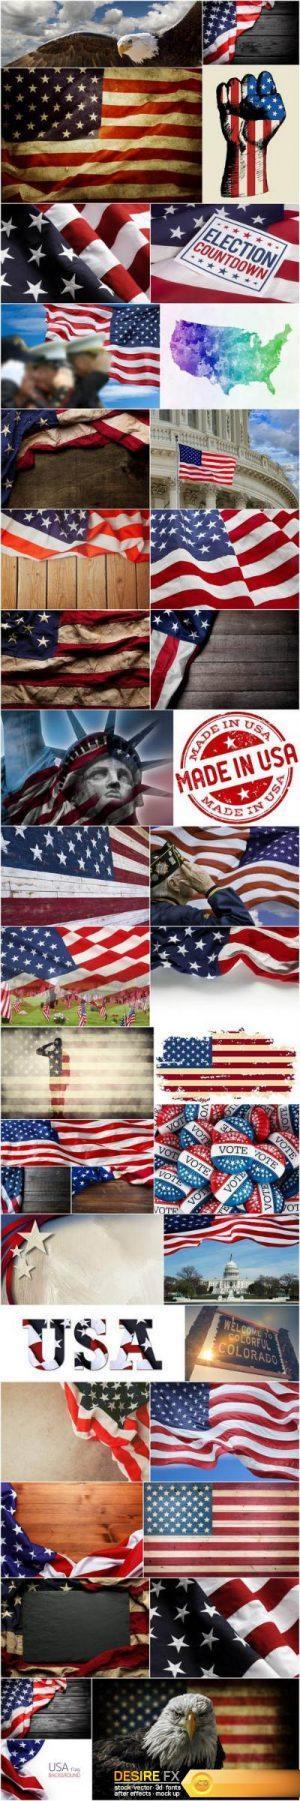 U.S. Style – American Patriot, Set of 39xUHQ JPEG Professional Stock Images